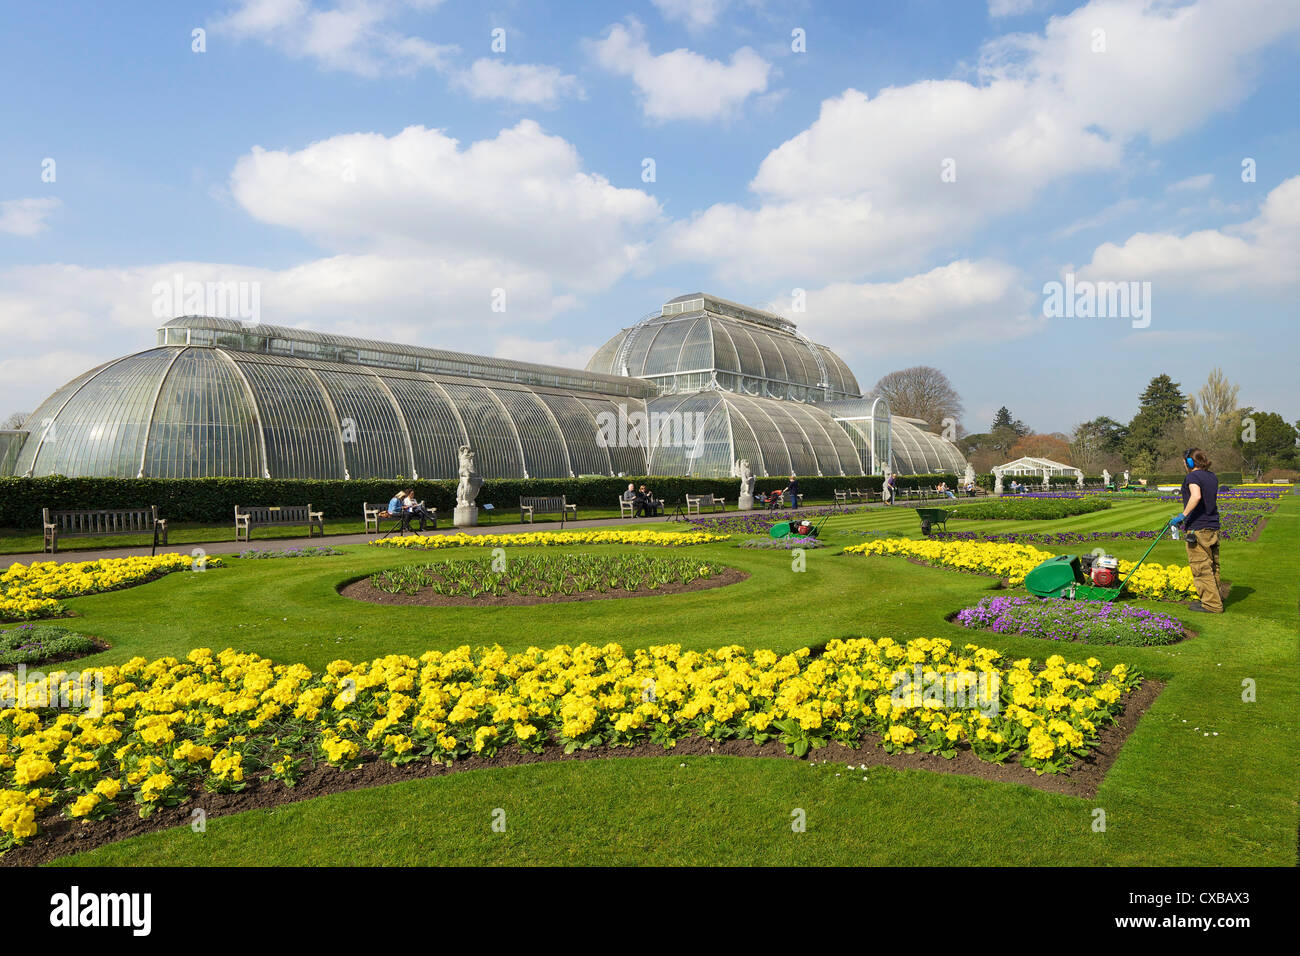 Palm House in spring, Royal Botanic Gardens, Kew, UNESCO World Heritage Site, London, England, United Kingdom, Europe - Stock Image